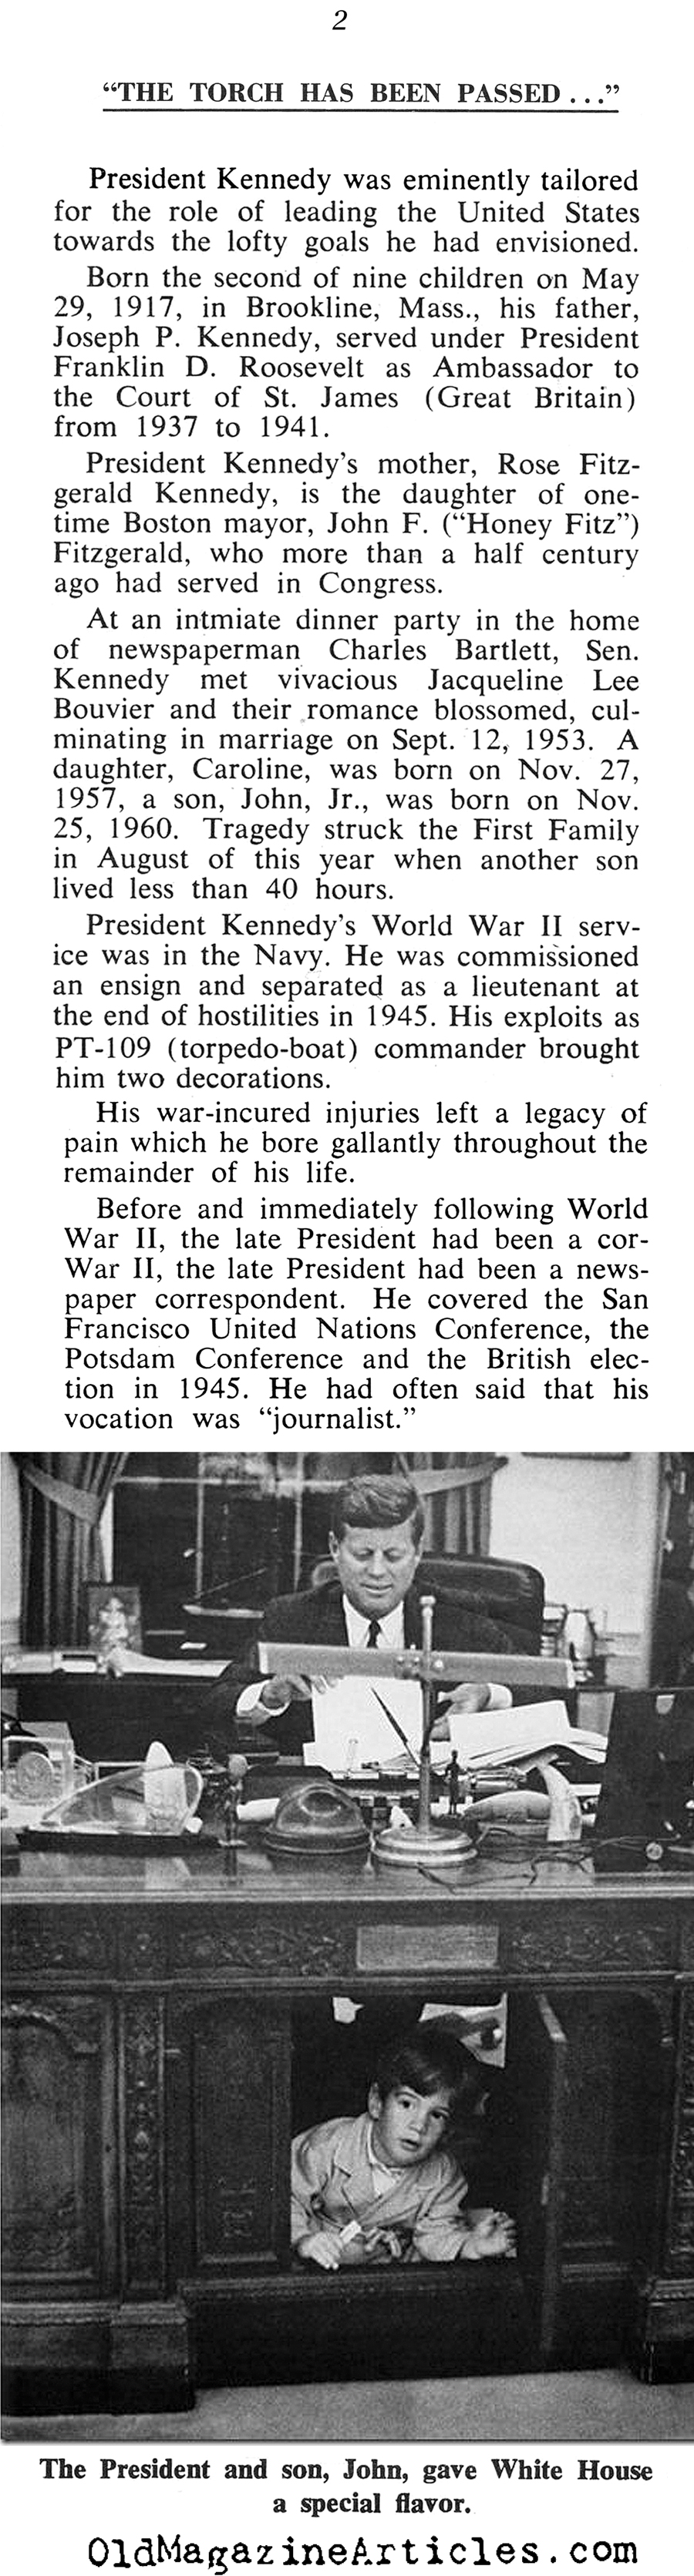 ''The Torch is Passed'' (The Washington World, 1963)